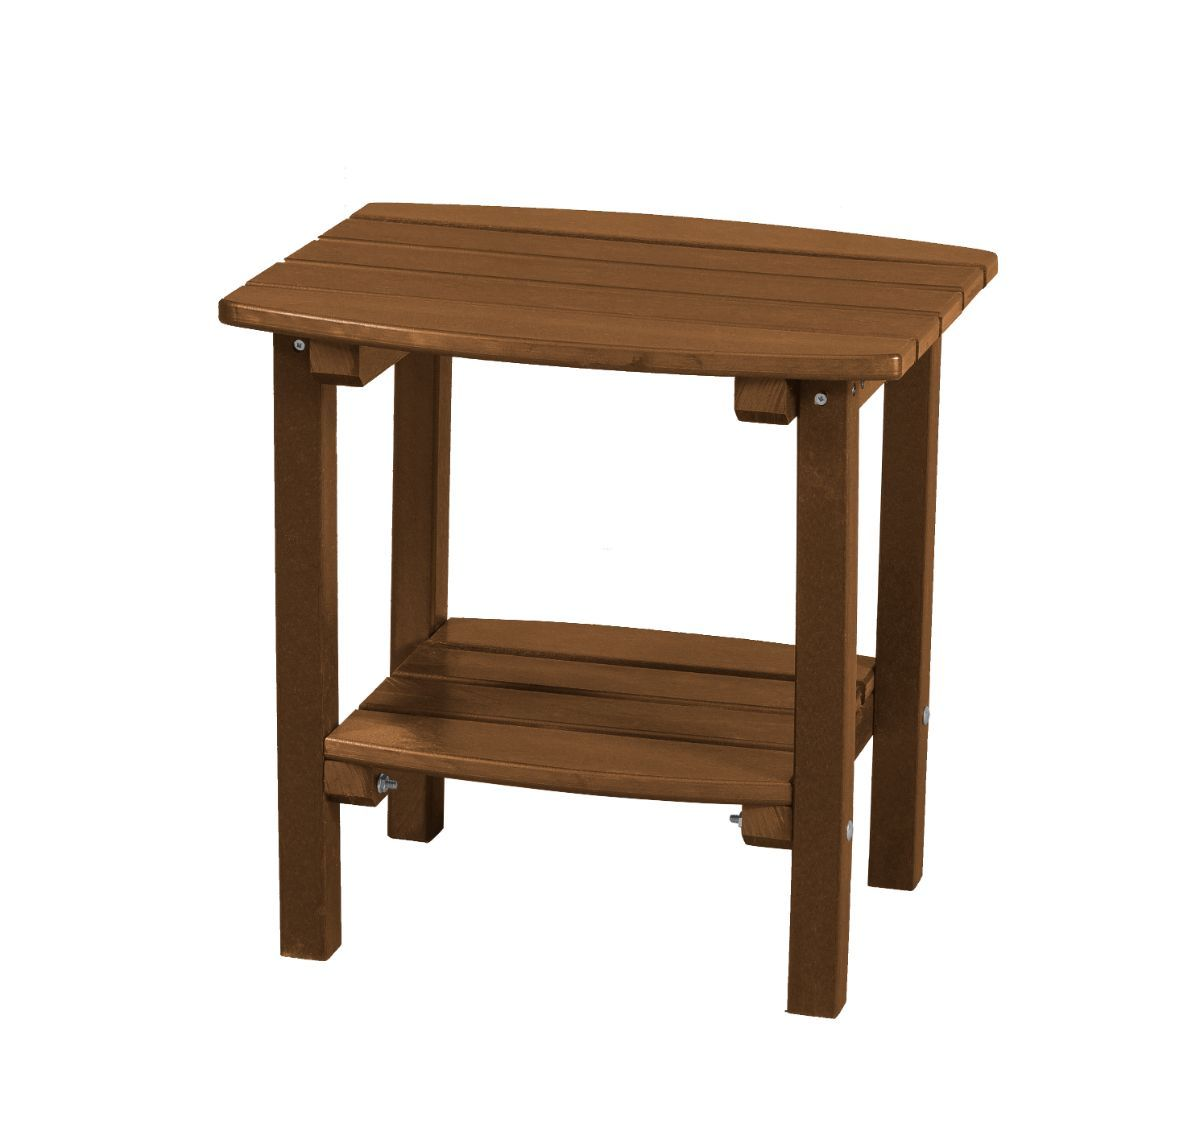 Tudor Brown Odessa Small Outdoor Side Table